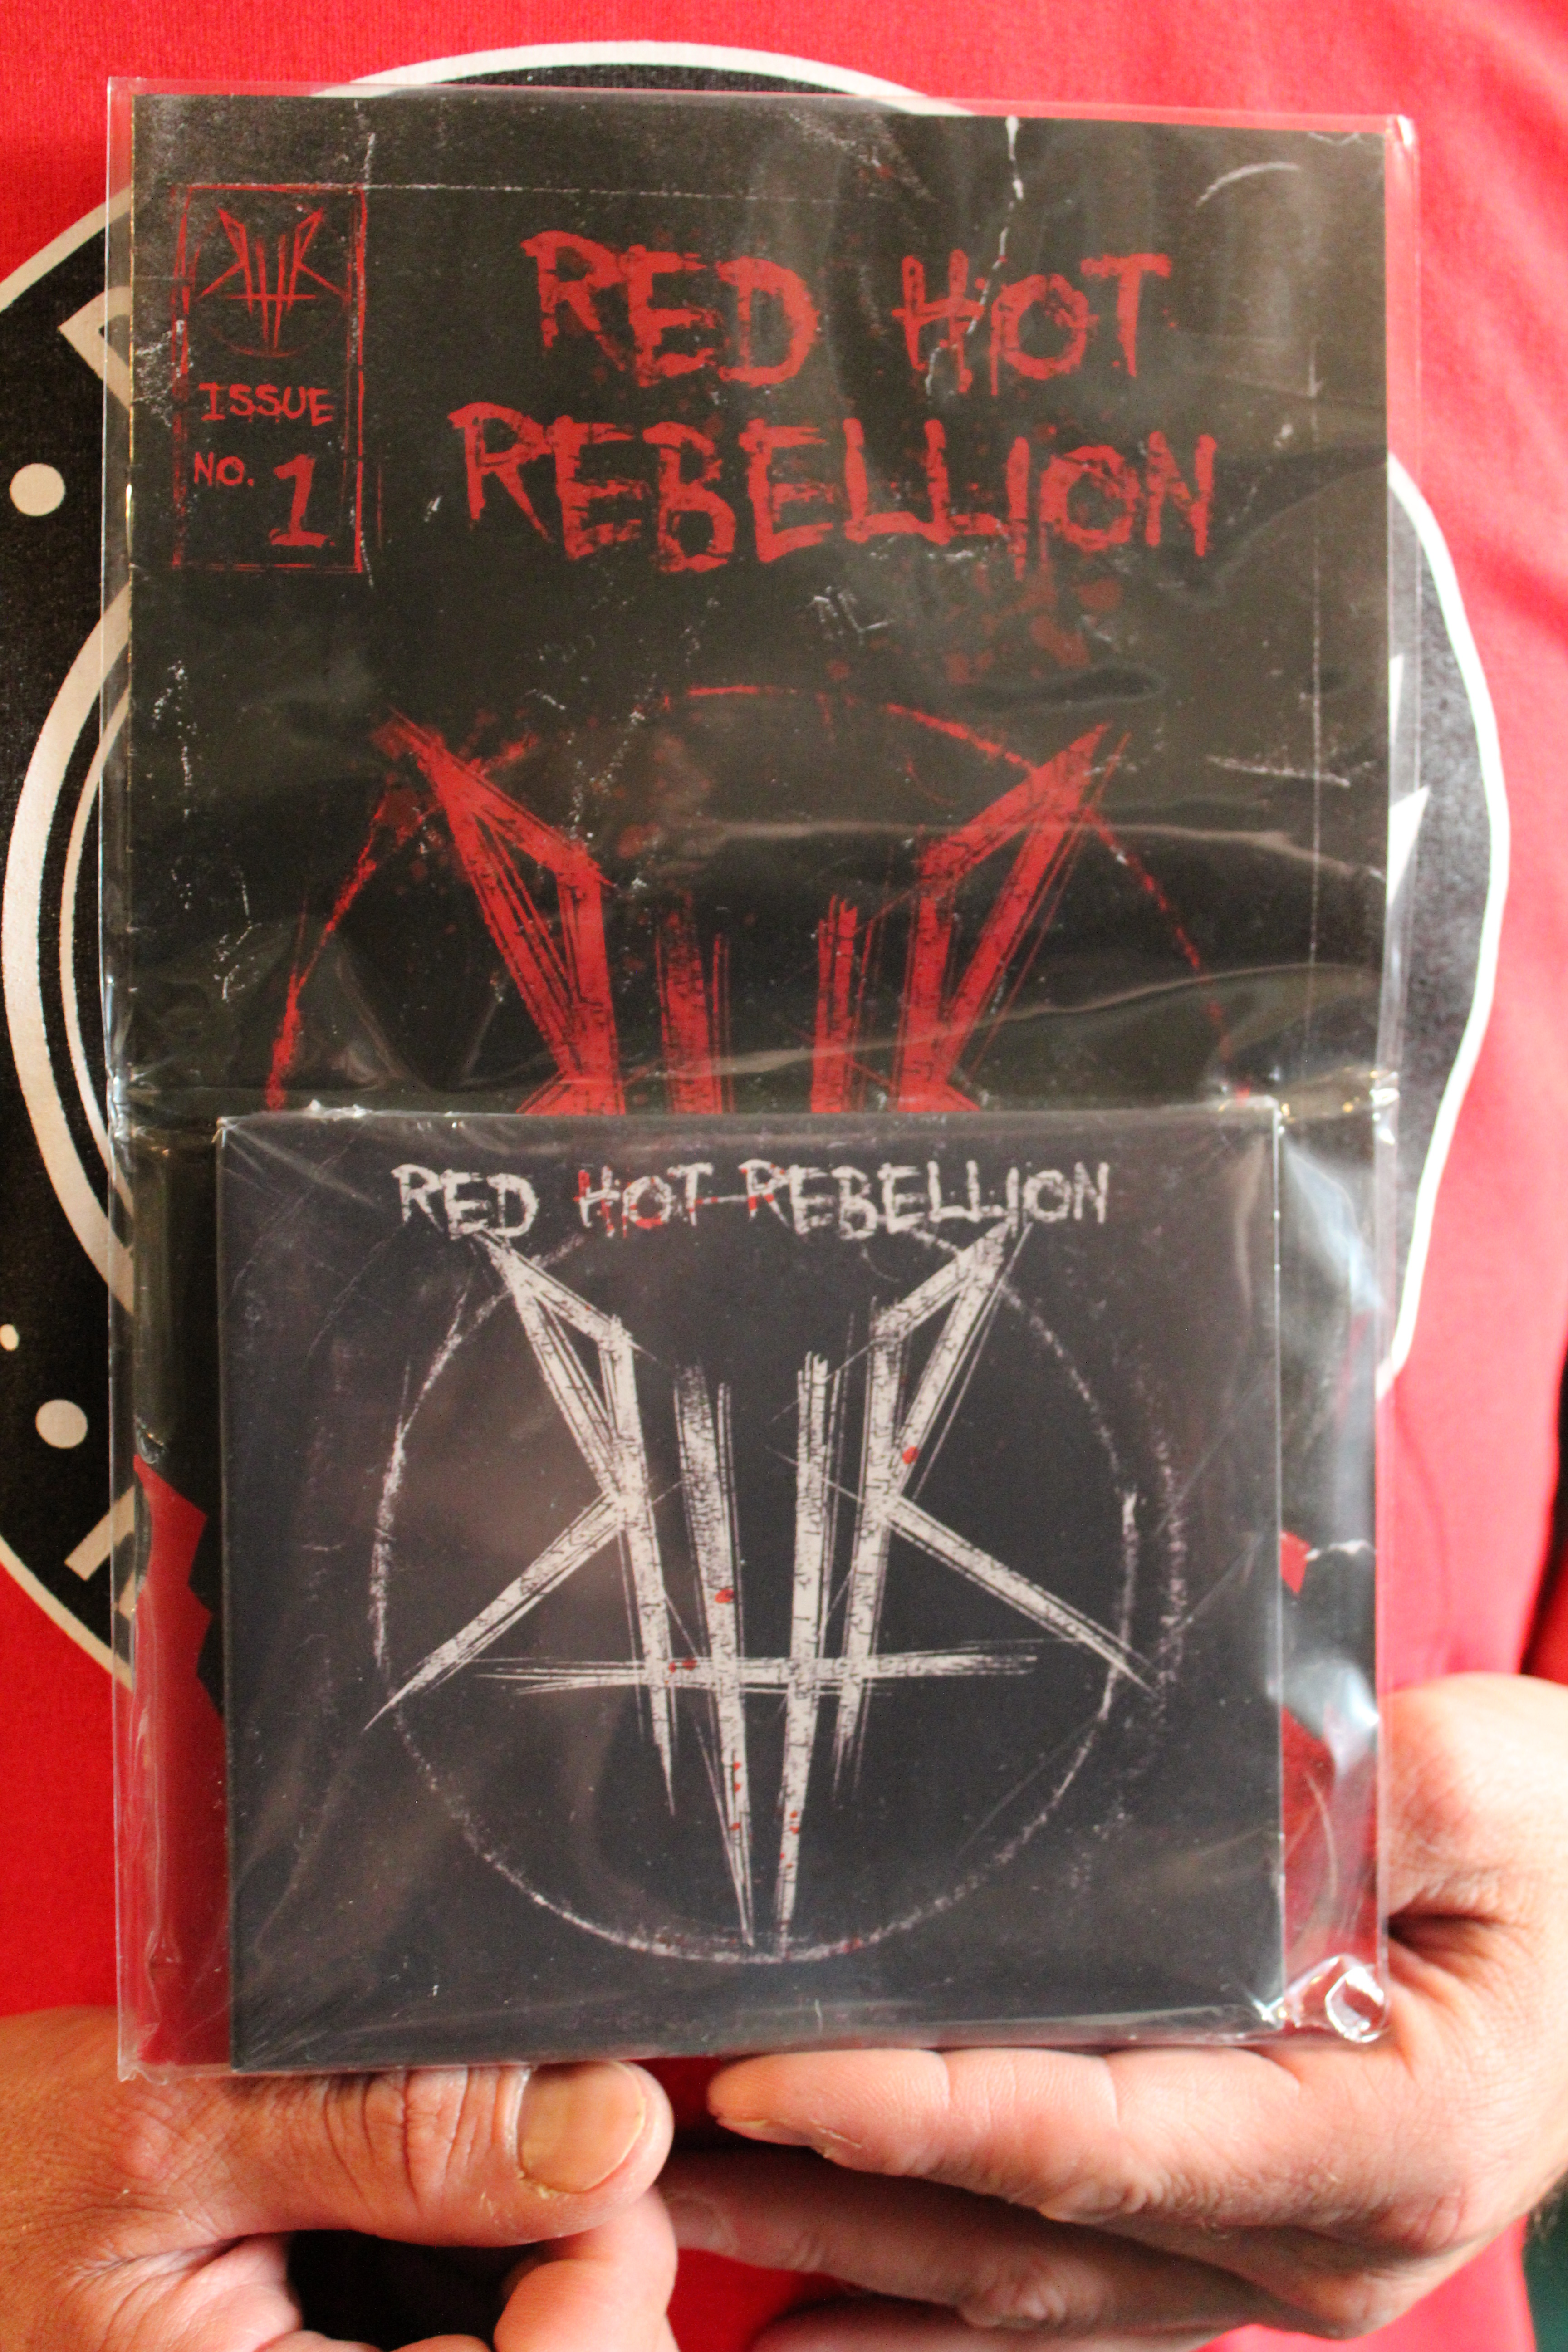 RED HOT REBELLION Self-Titled Debut Album